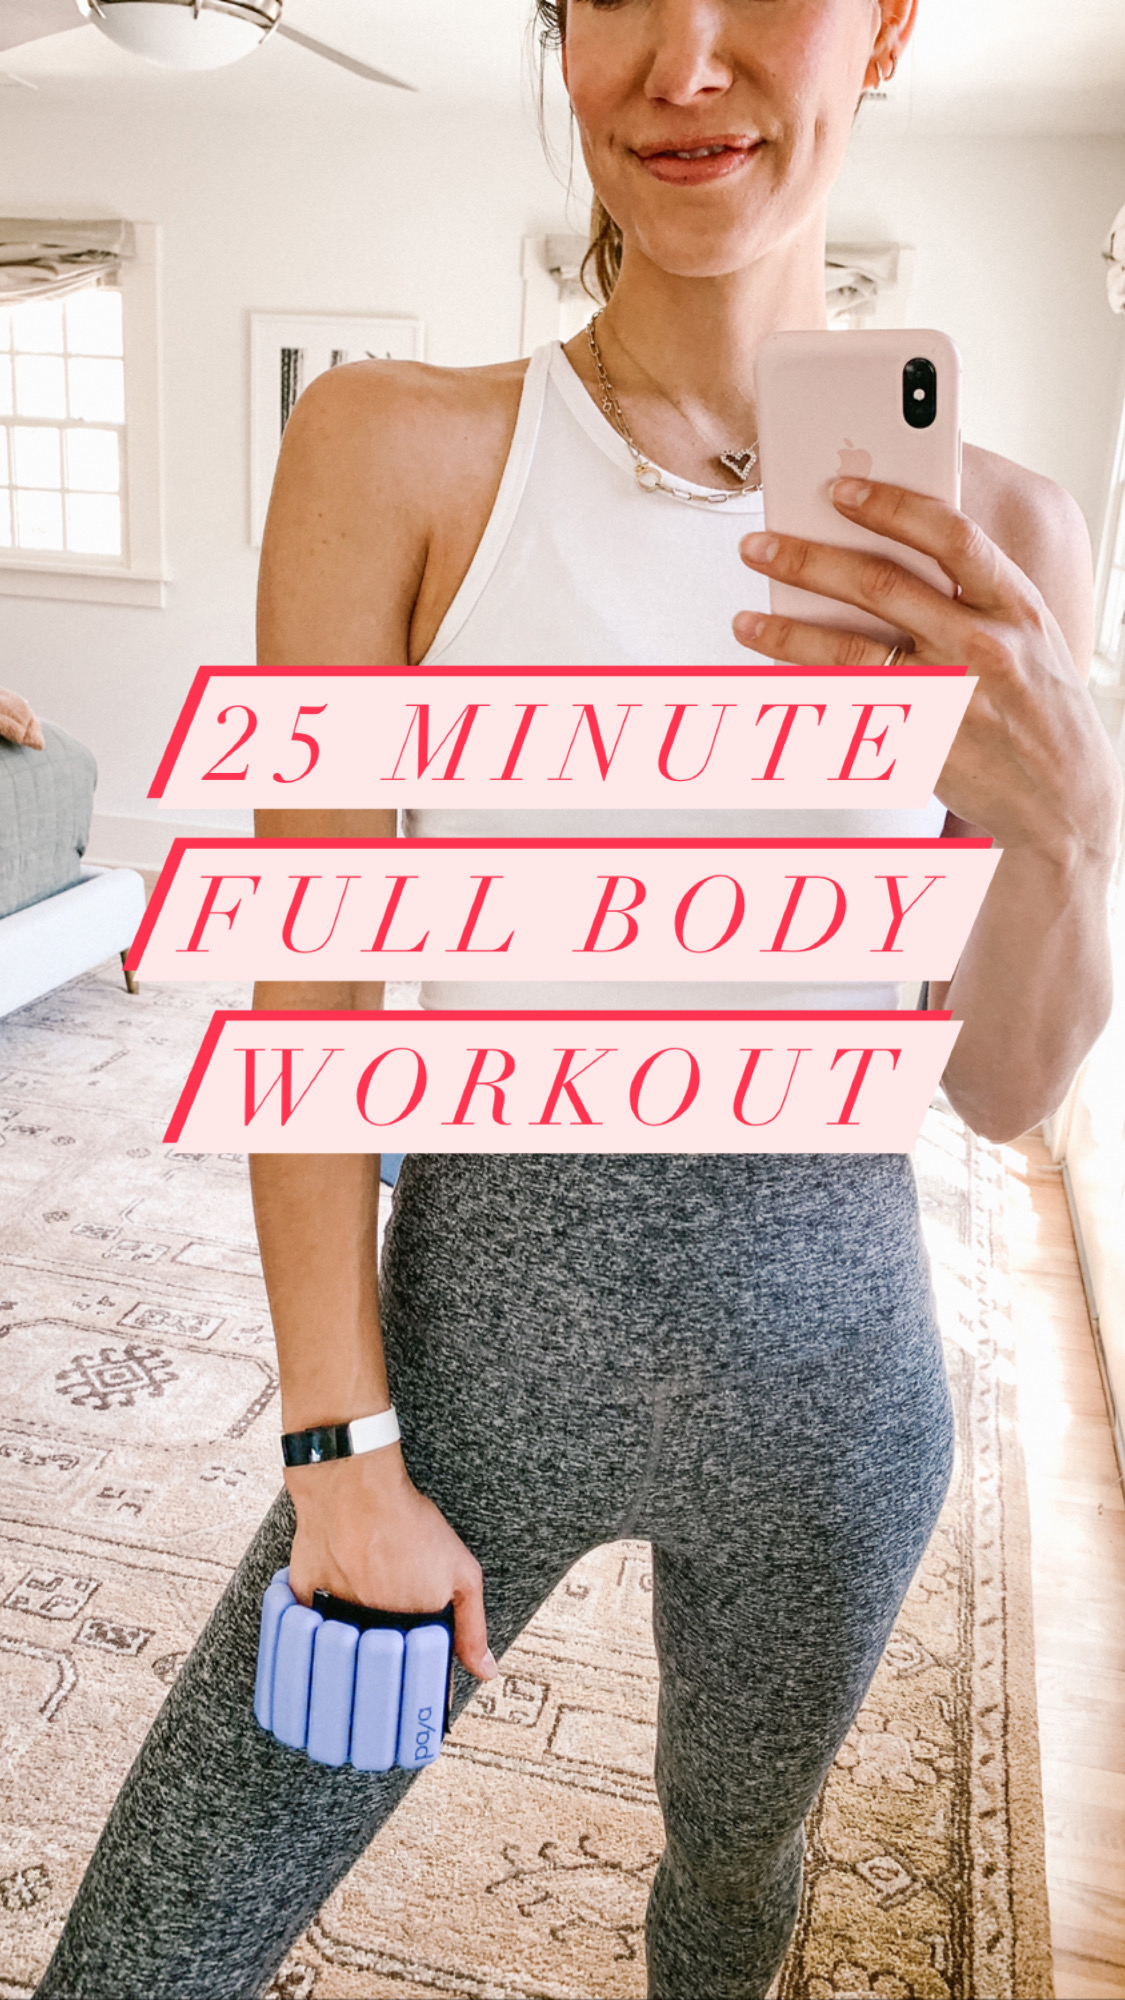 25 minute full body workout with no equipment required. Add 1lb ankle weights for extra resistance *if* you want!